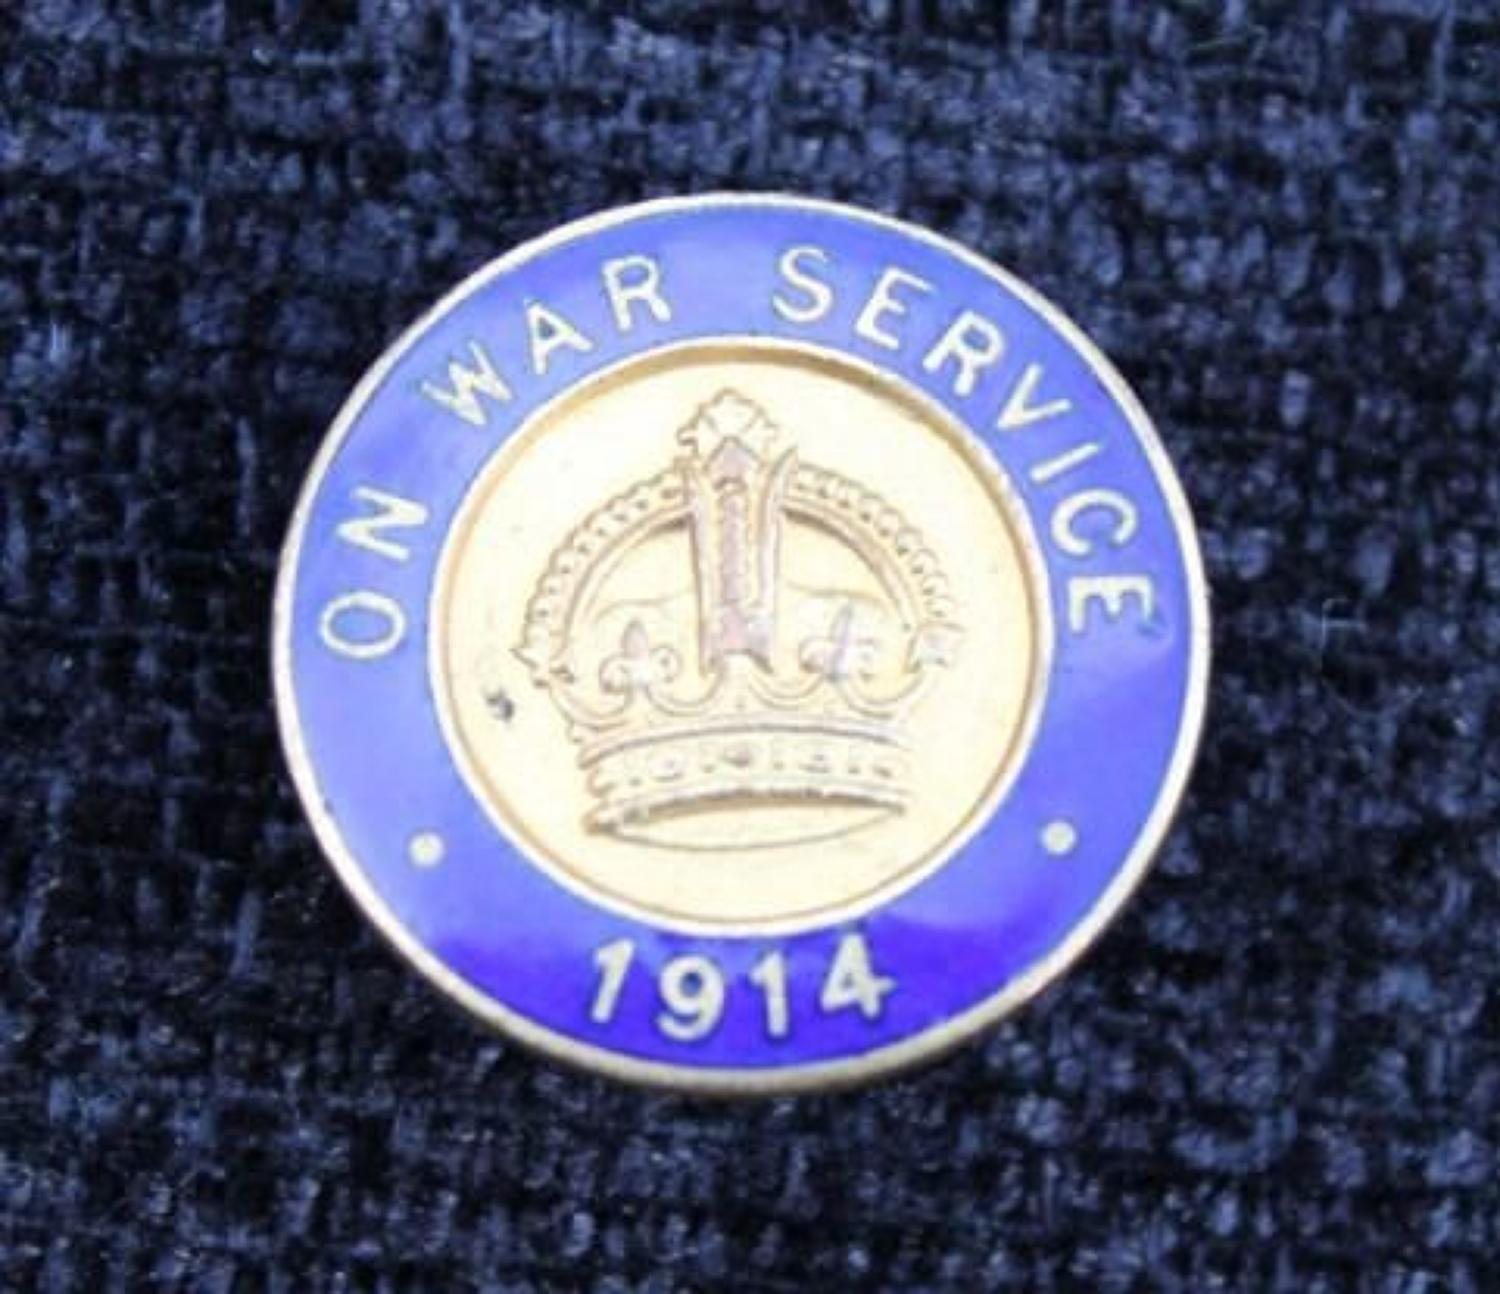 On War Service 1914 Lapel Badge